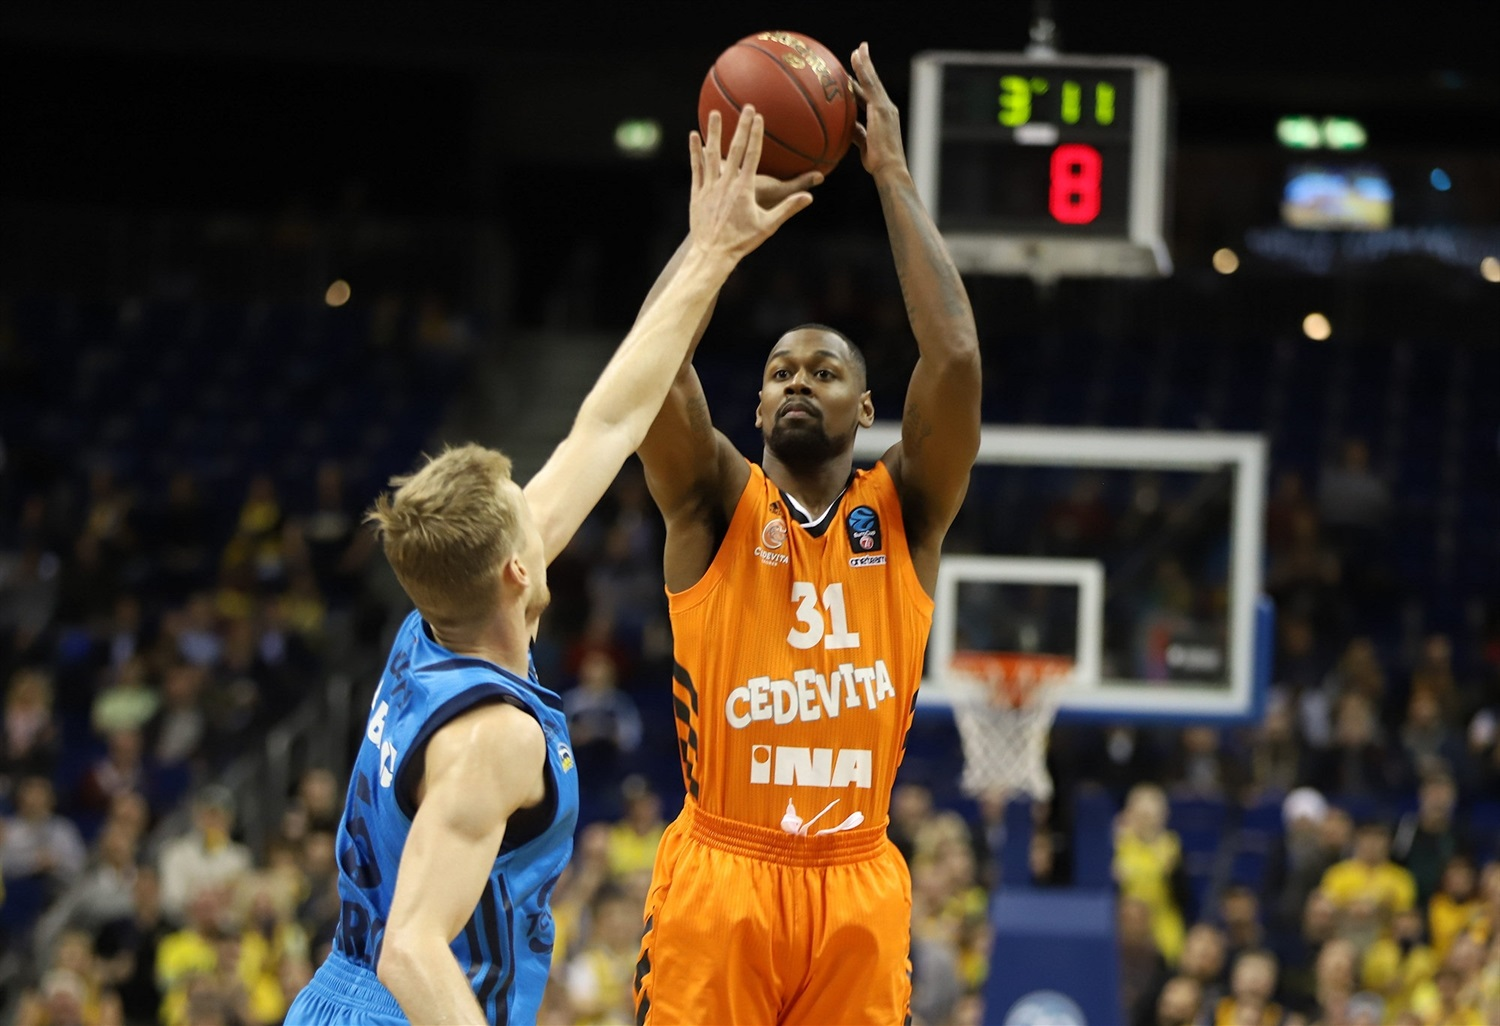 James Bell - Cedevita Zagreb (photo Andreas Knopf - ALBA) - EC18